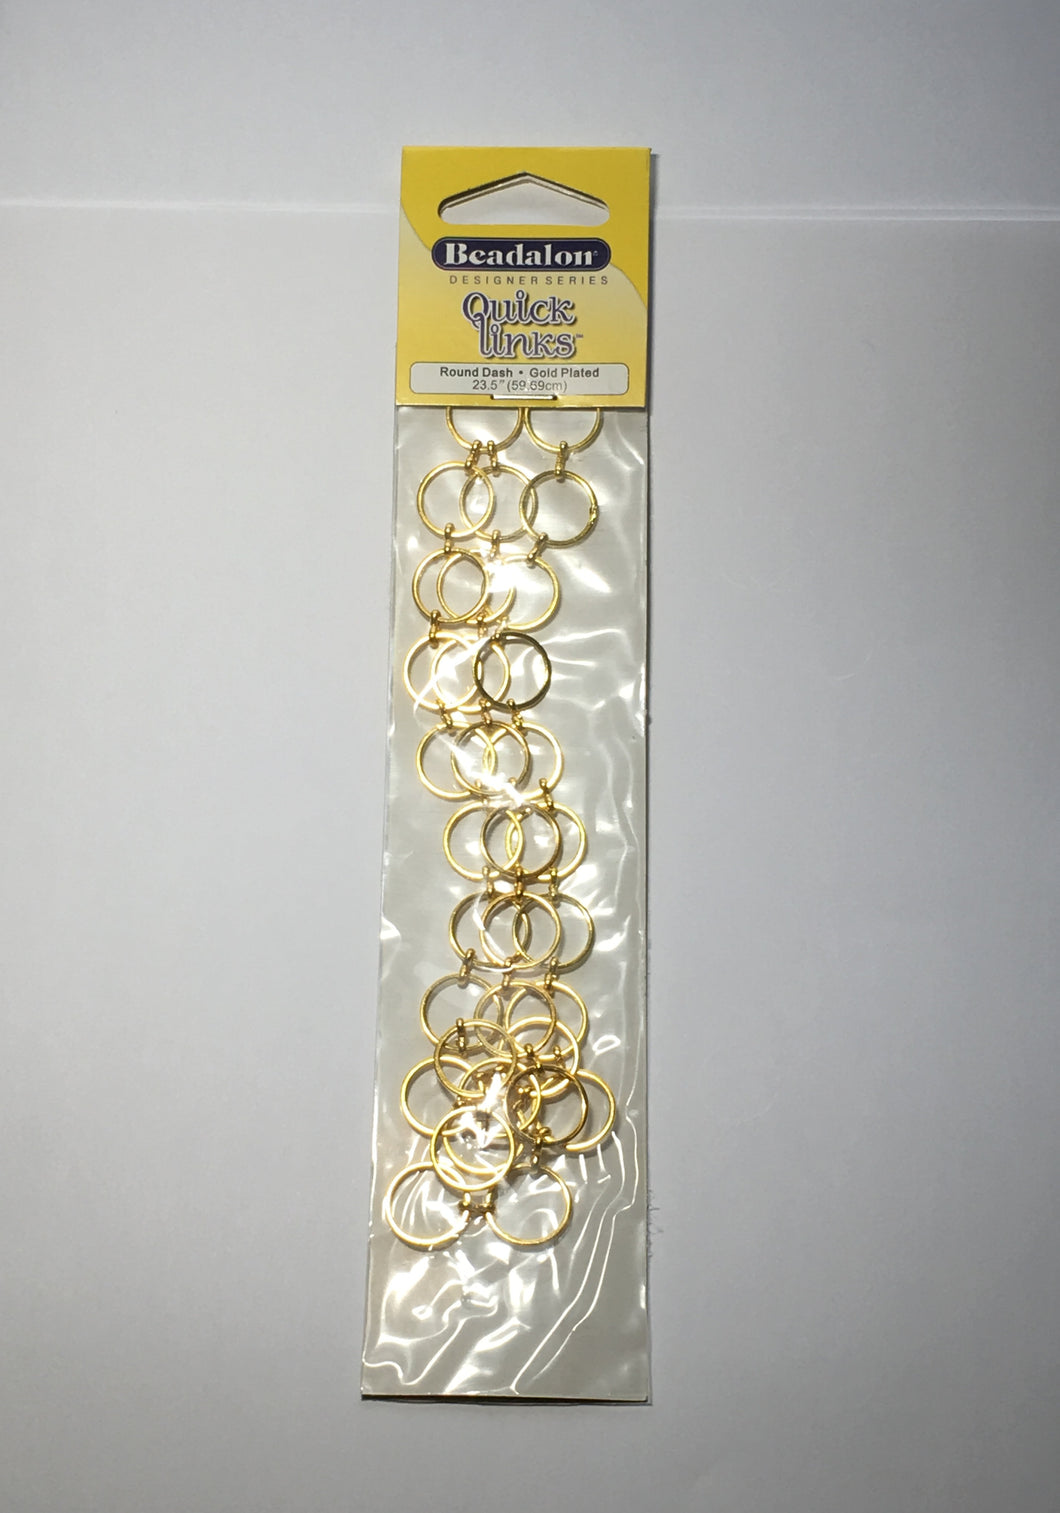 Beadalon Designer Series Quick Links Round Dash Gold Plated -  23.5 Inches